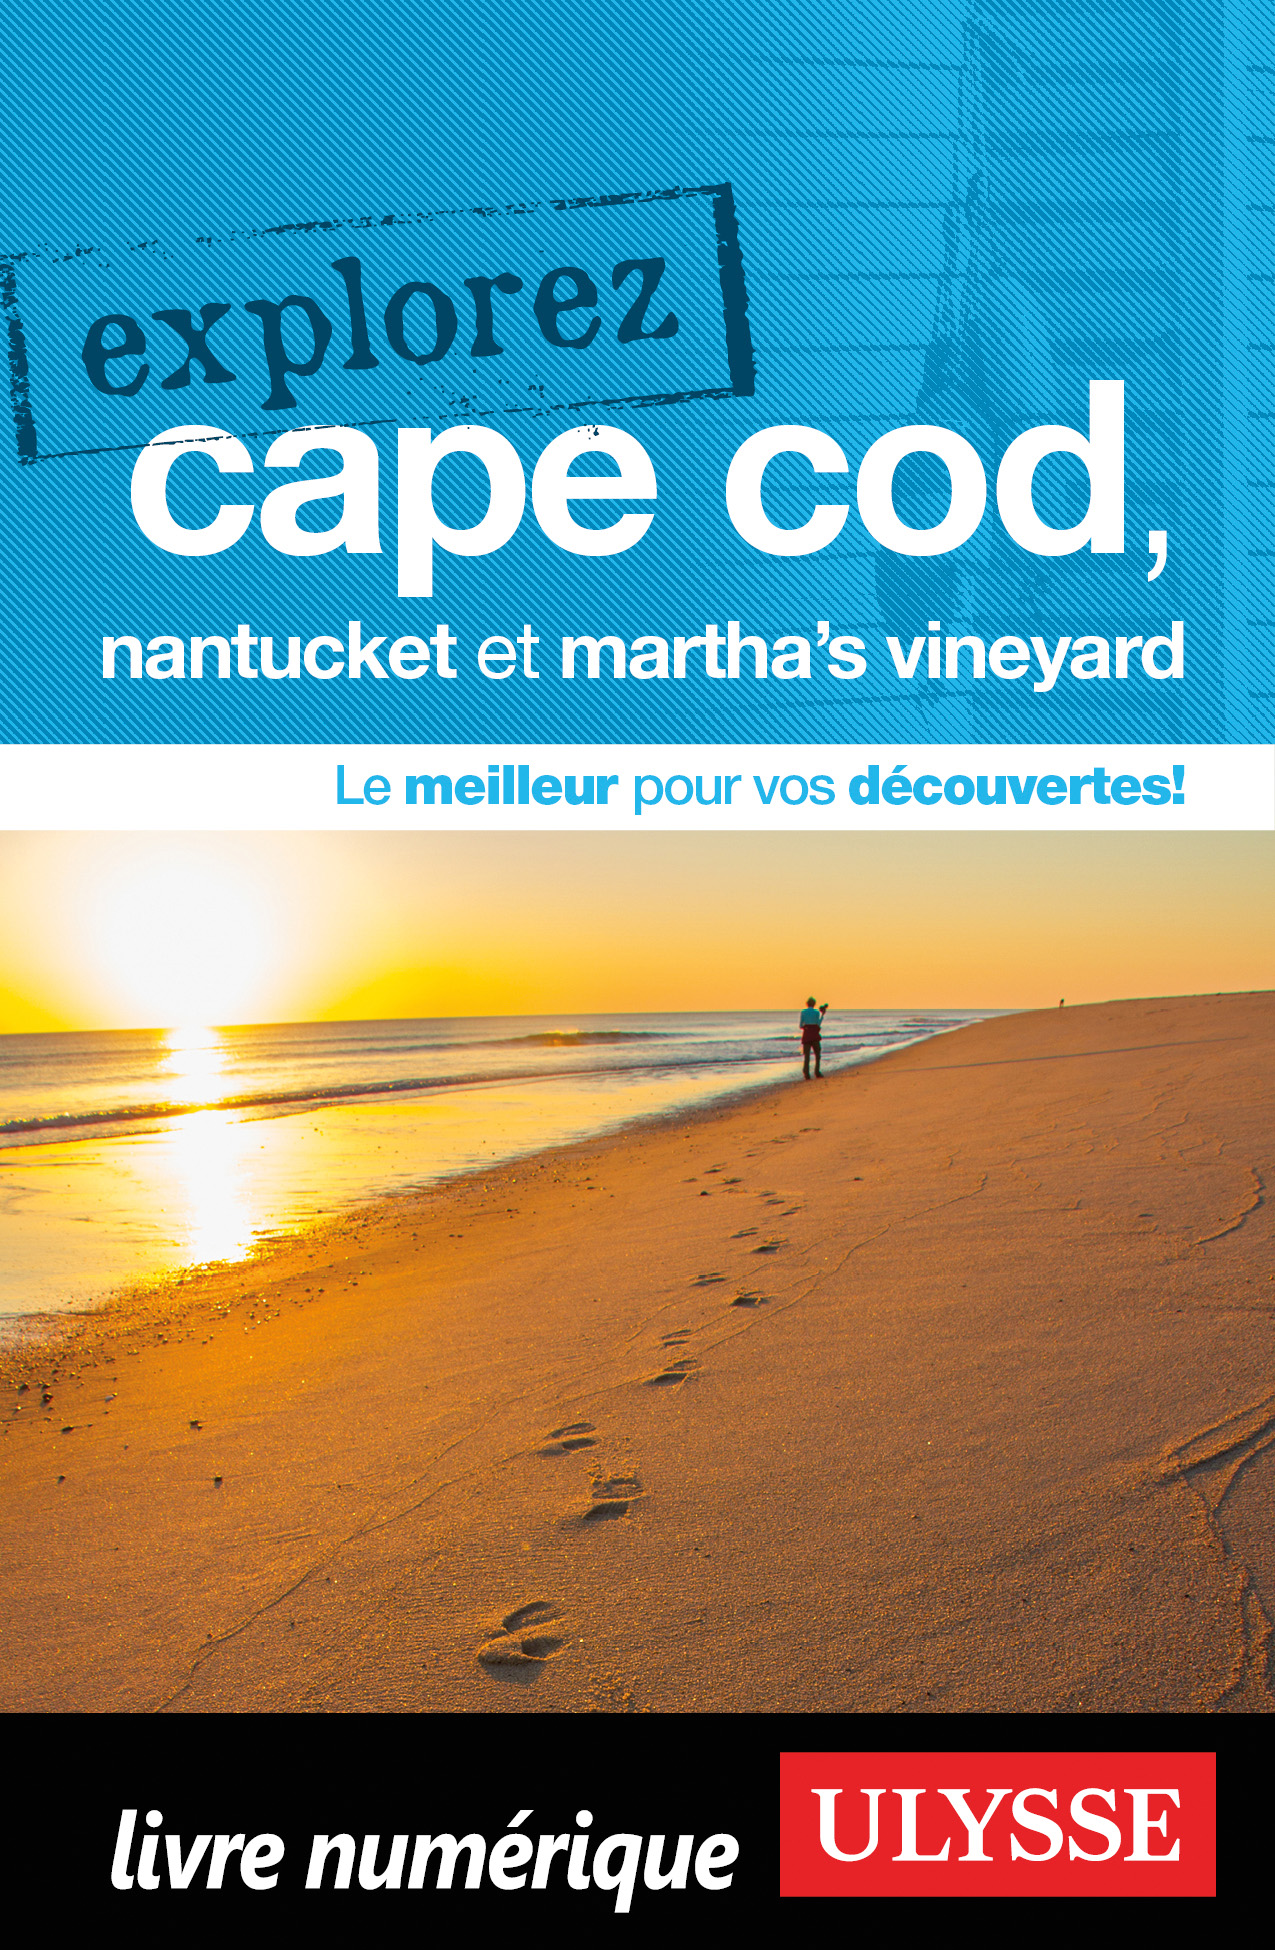 Explorez Cape Cod, Nantucket et Martha's Vineyard - Louise Gaboury